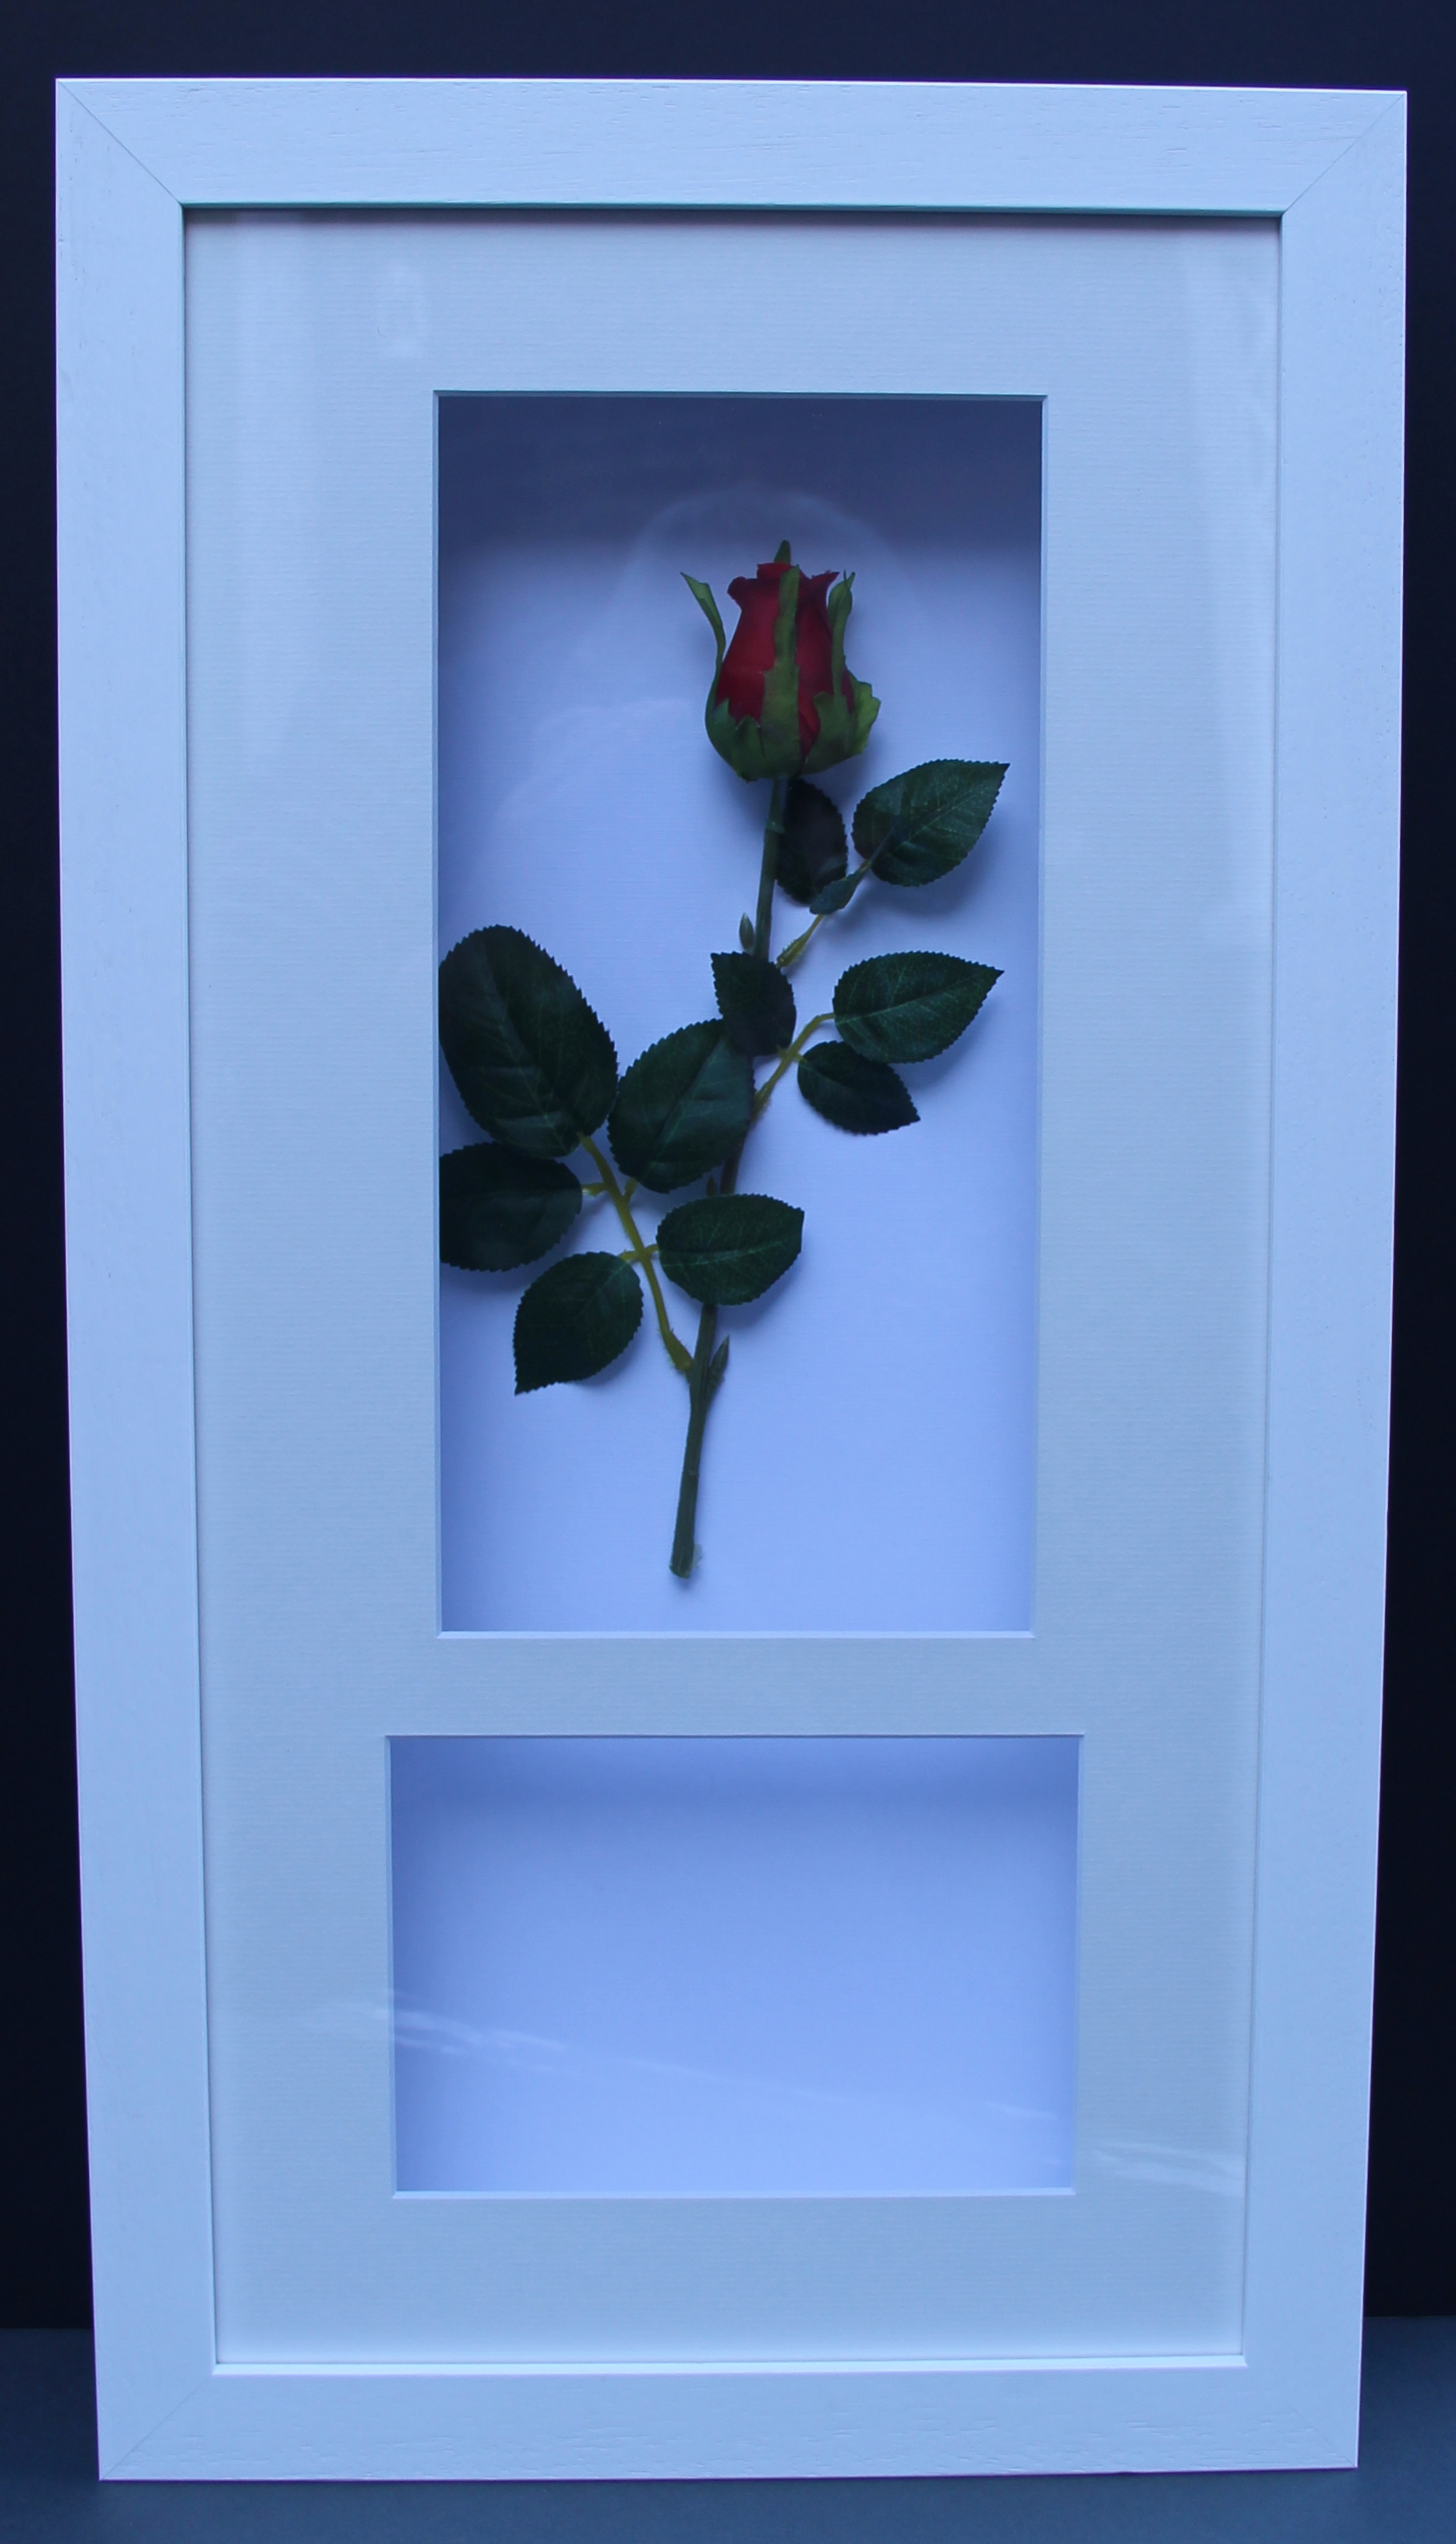 Rose with space for photograph